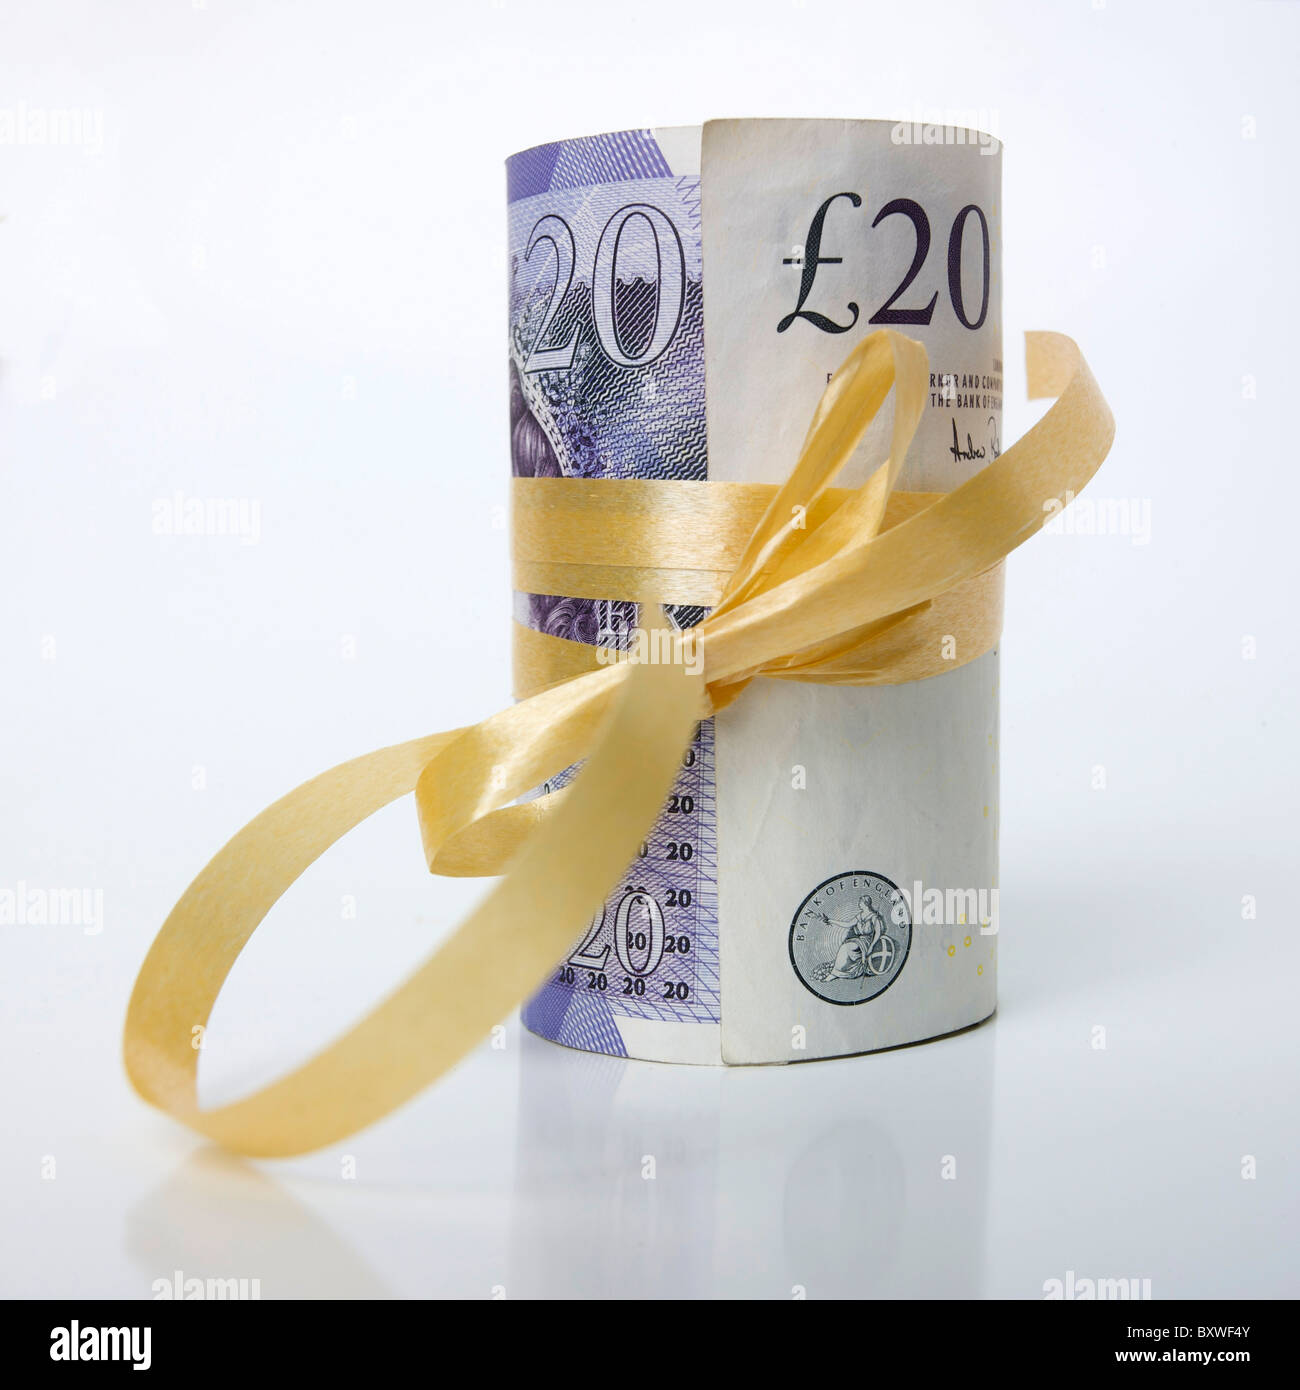 Rolled bunch of banknotes, British / UK pound sterling GBP - money gift / present / savings concept. - Stock Image